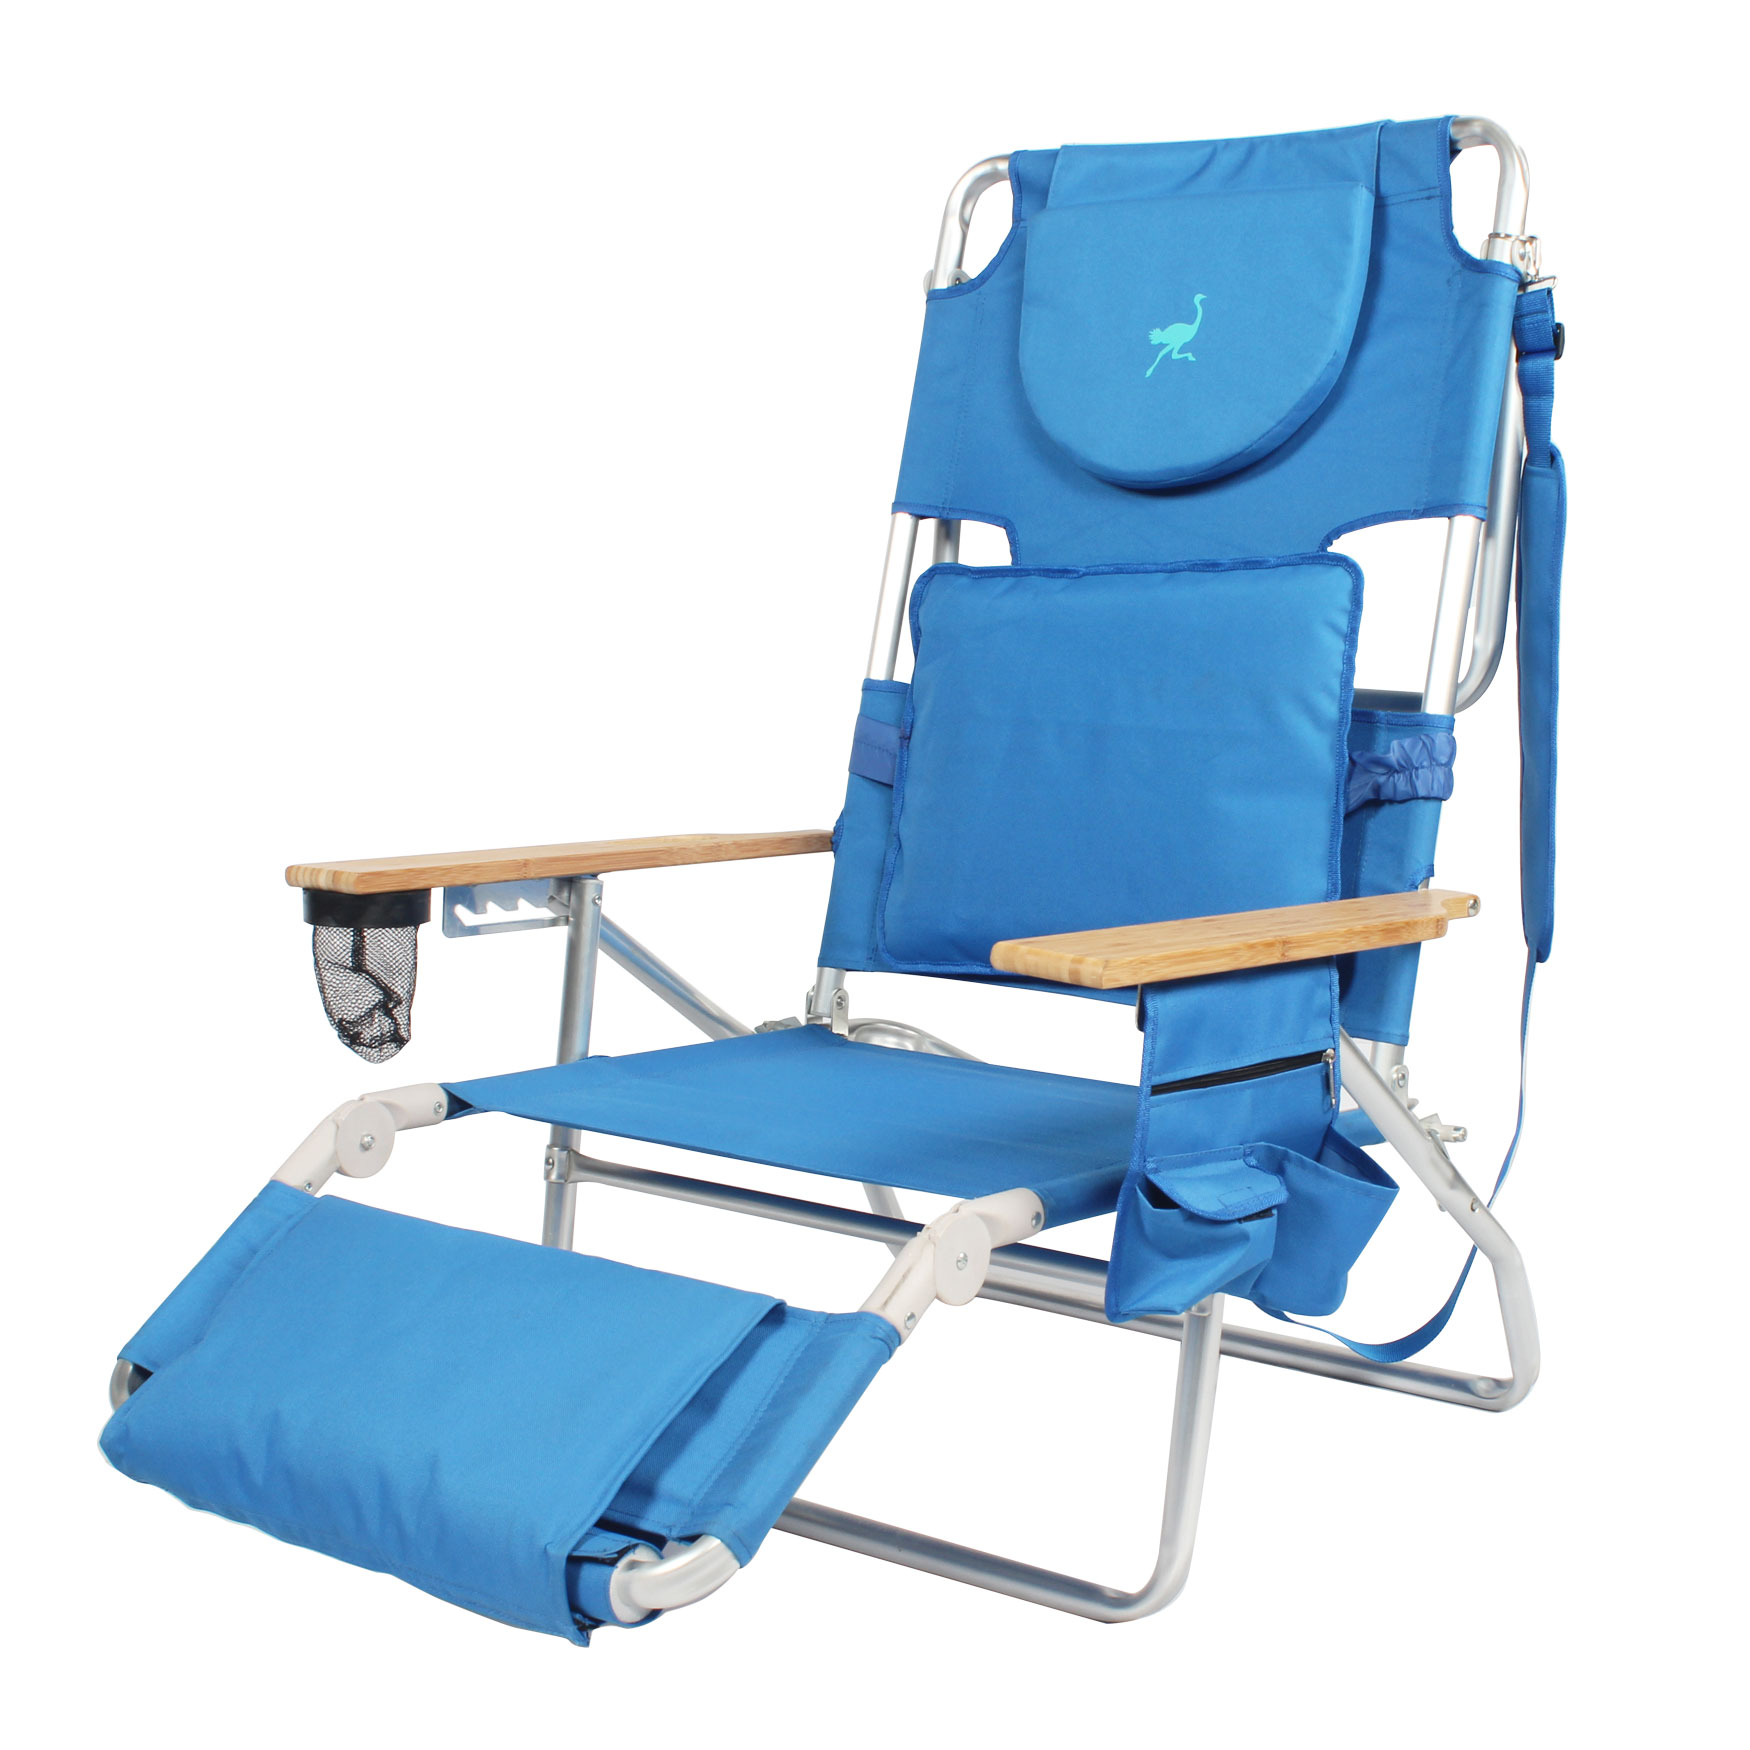 Deluxe Ostrich 3-In-1 Beach Chair, BLUE